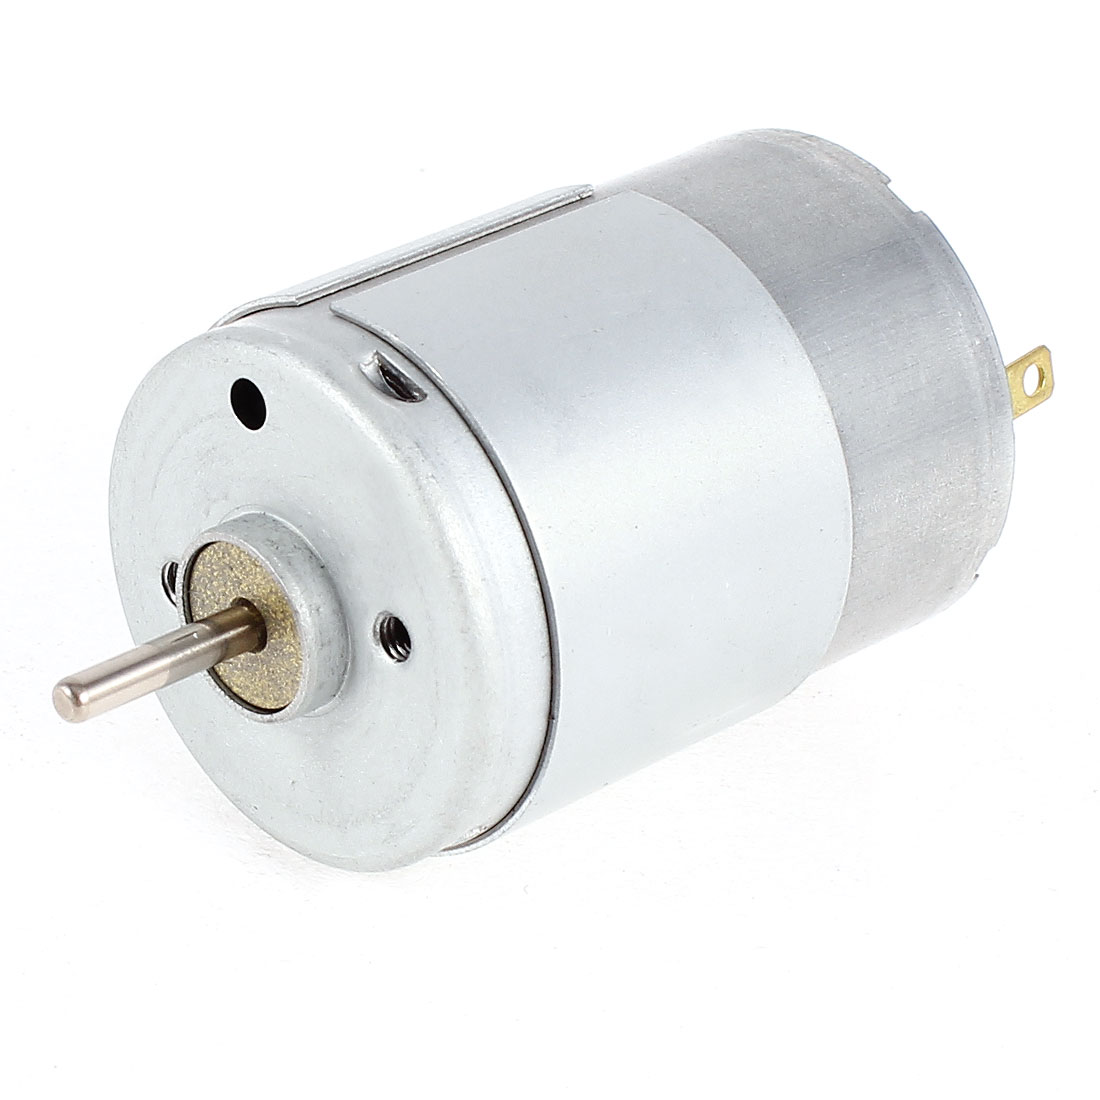 RS385 DC 12V-24V 3800-7600RPM High Speed Cylinder Shaped Micro Electric Motor